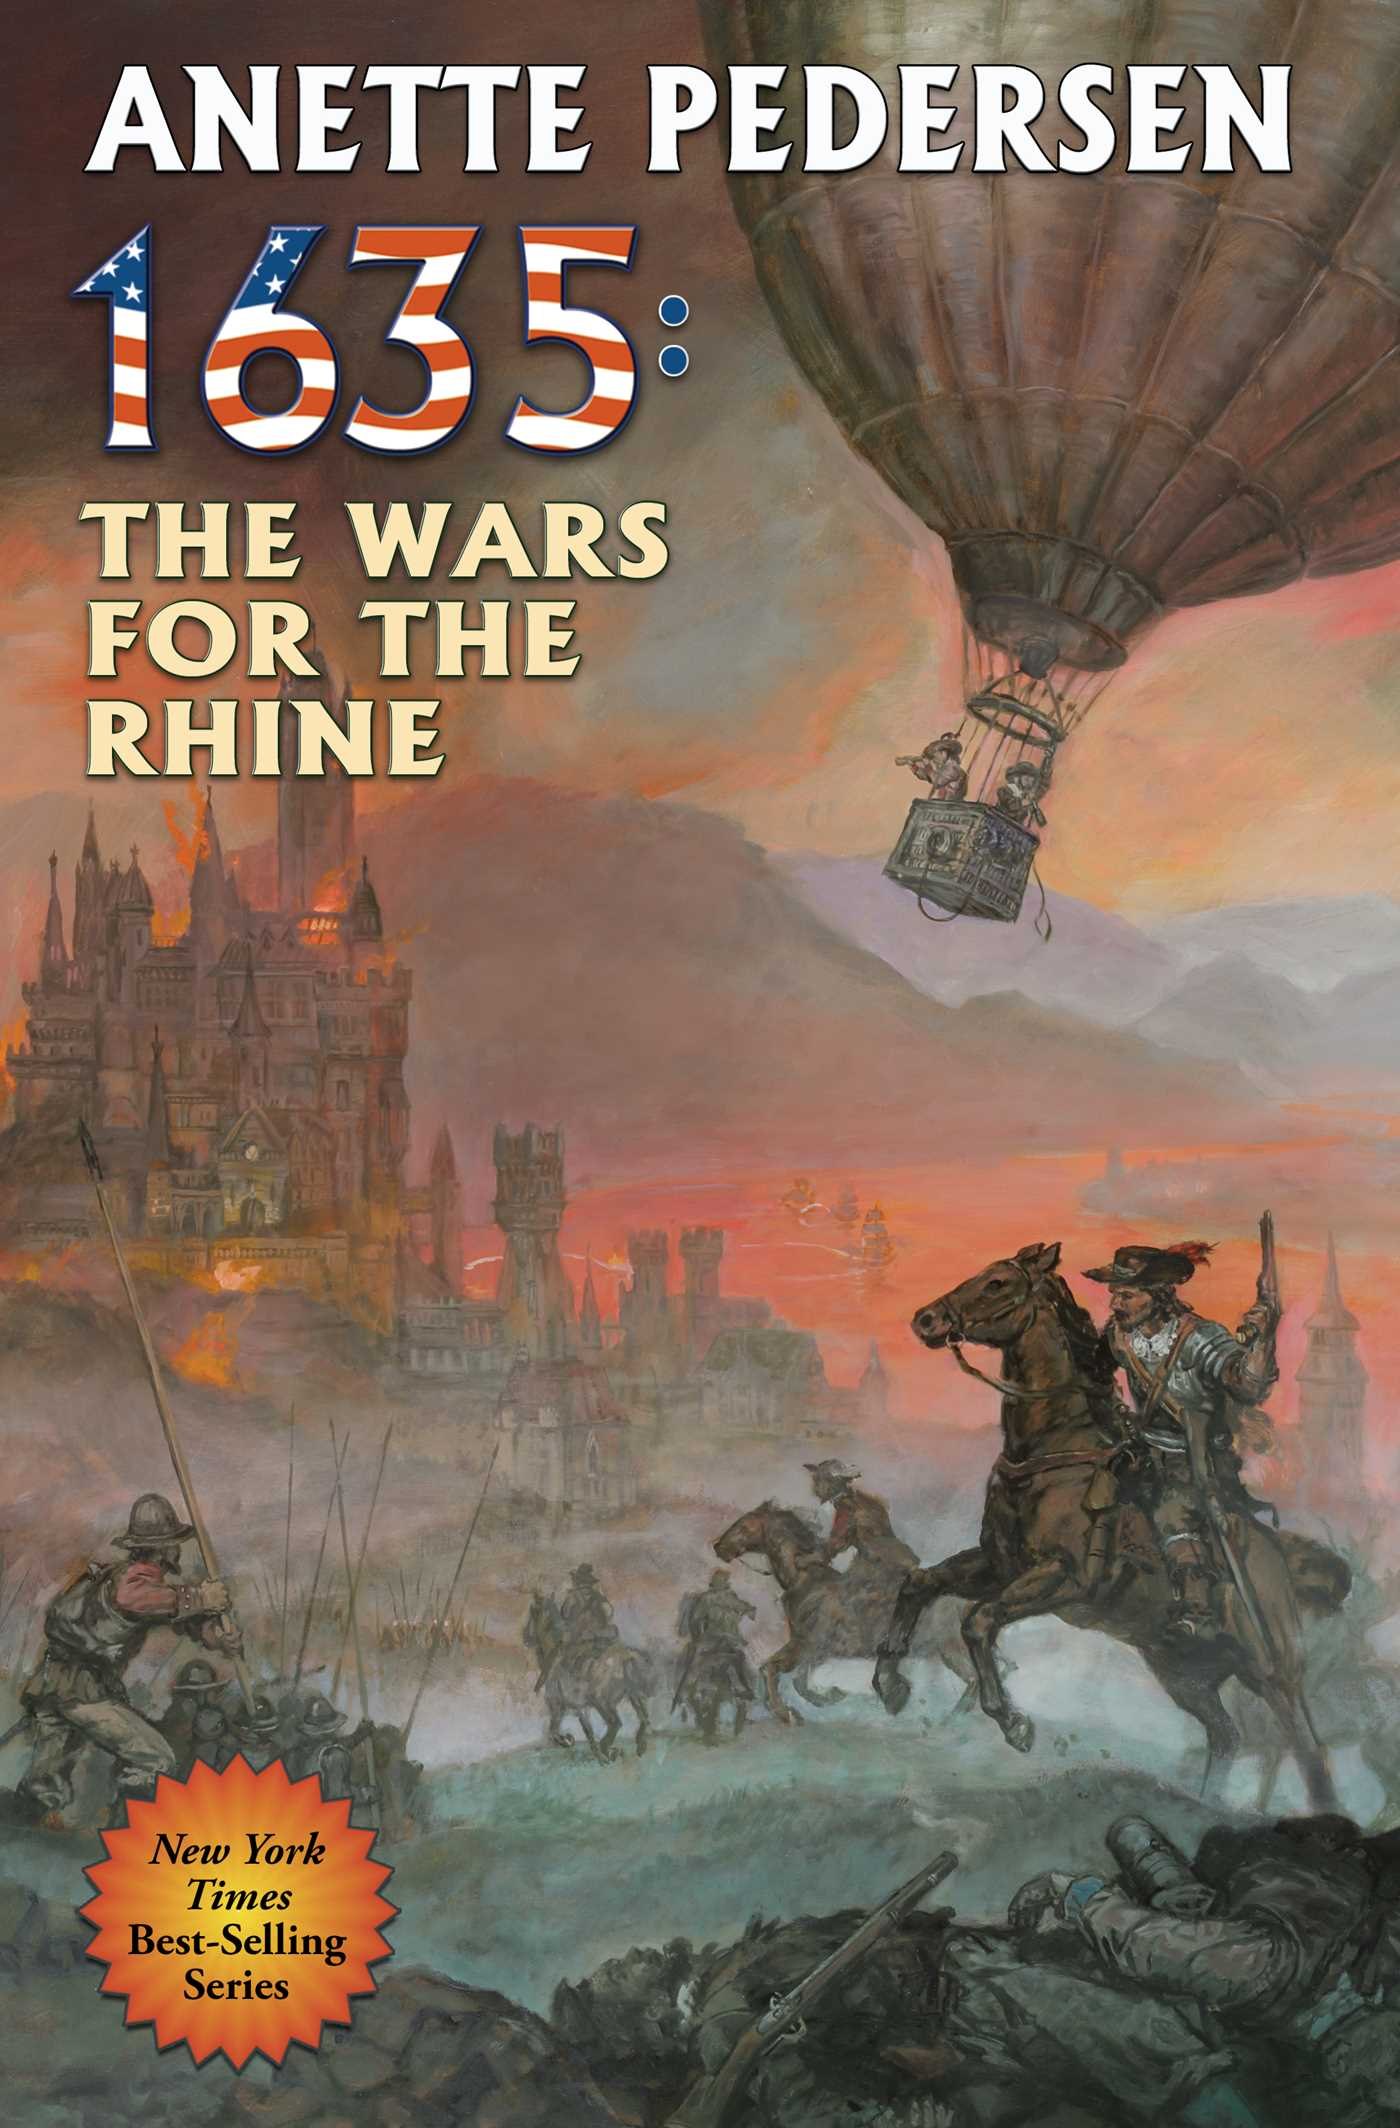 1635 the wars for the rhine 9781476782225 hr